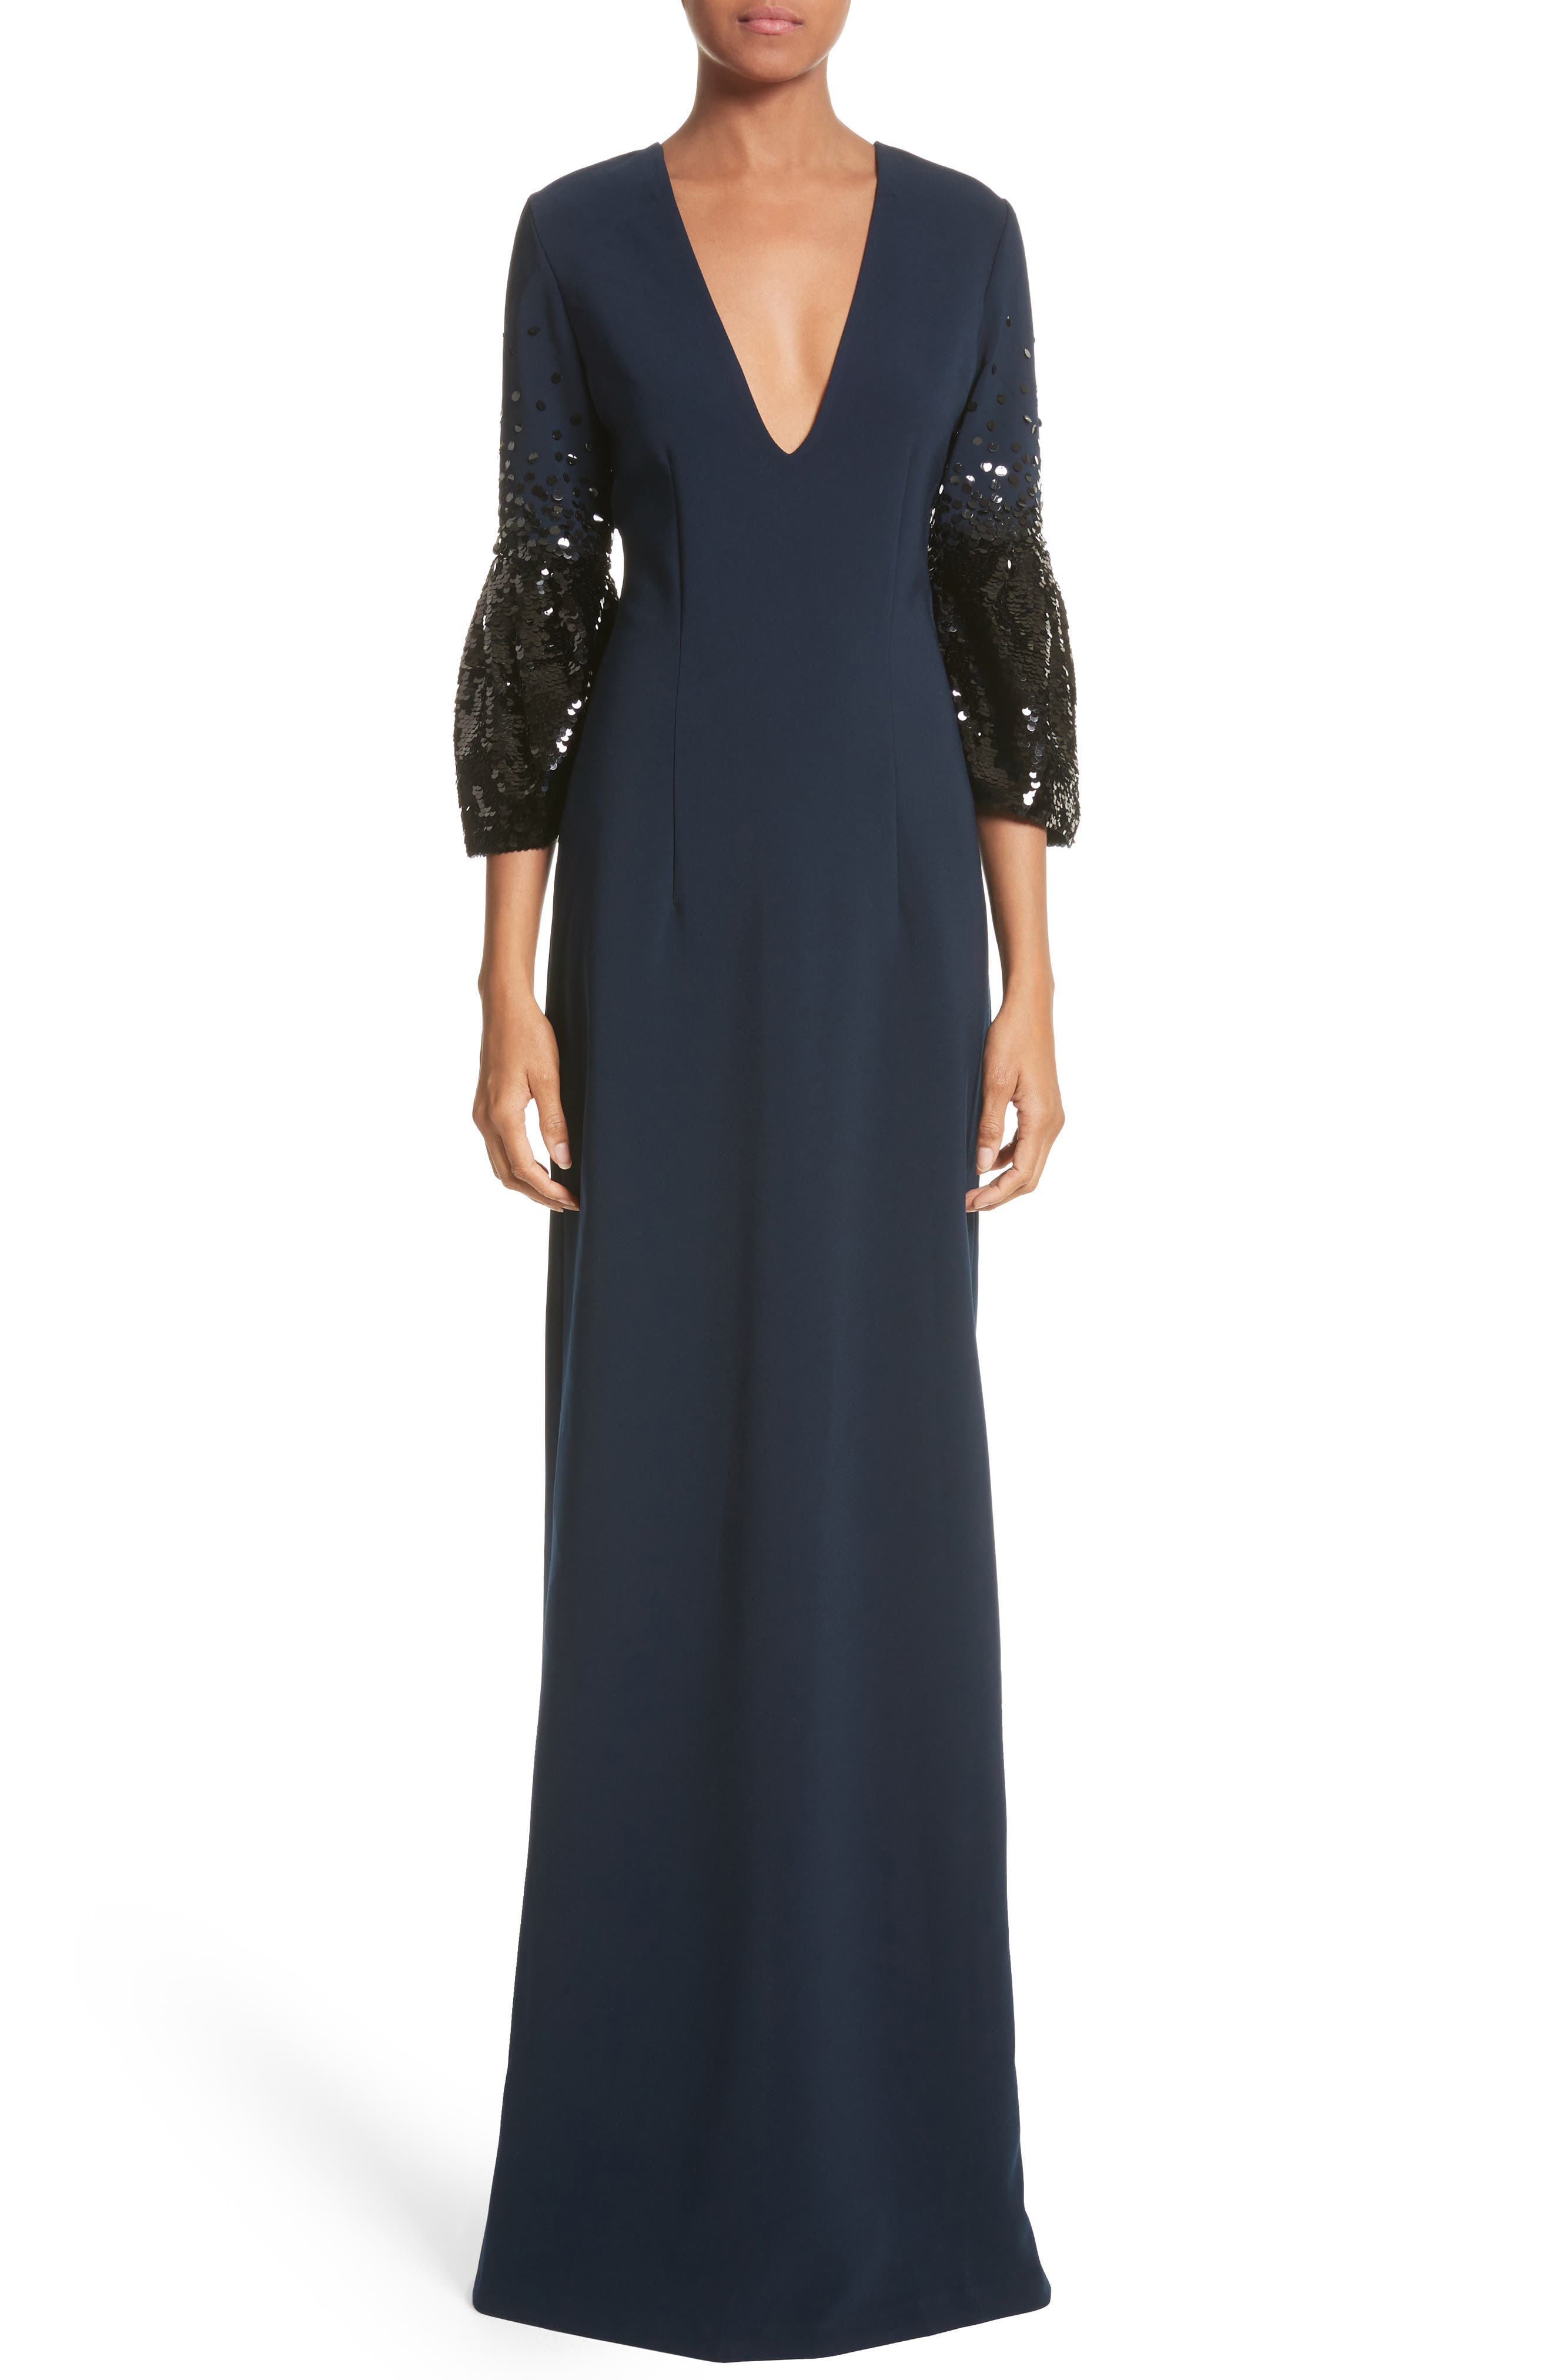 Noir Tower Embellished Sleeve Gown,                             Main thumbnail 1, color,                             410